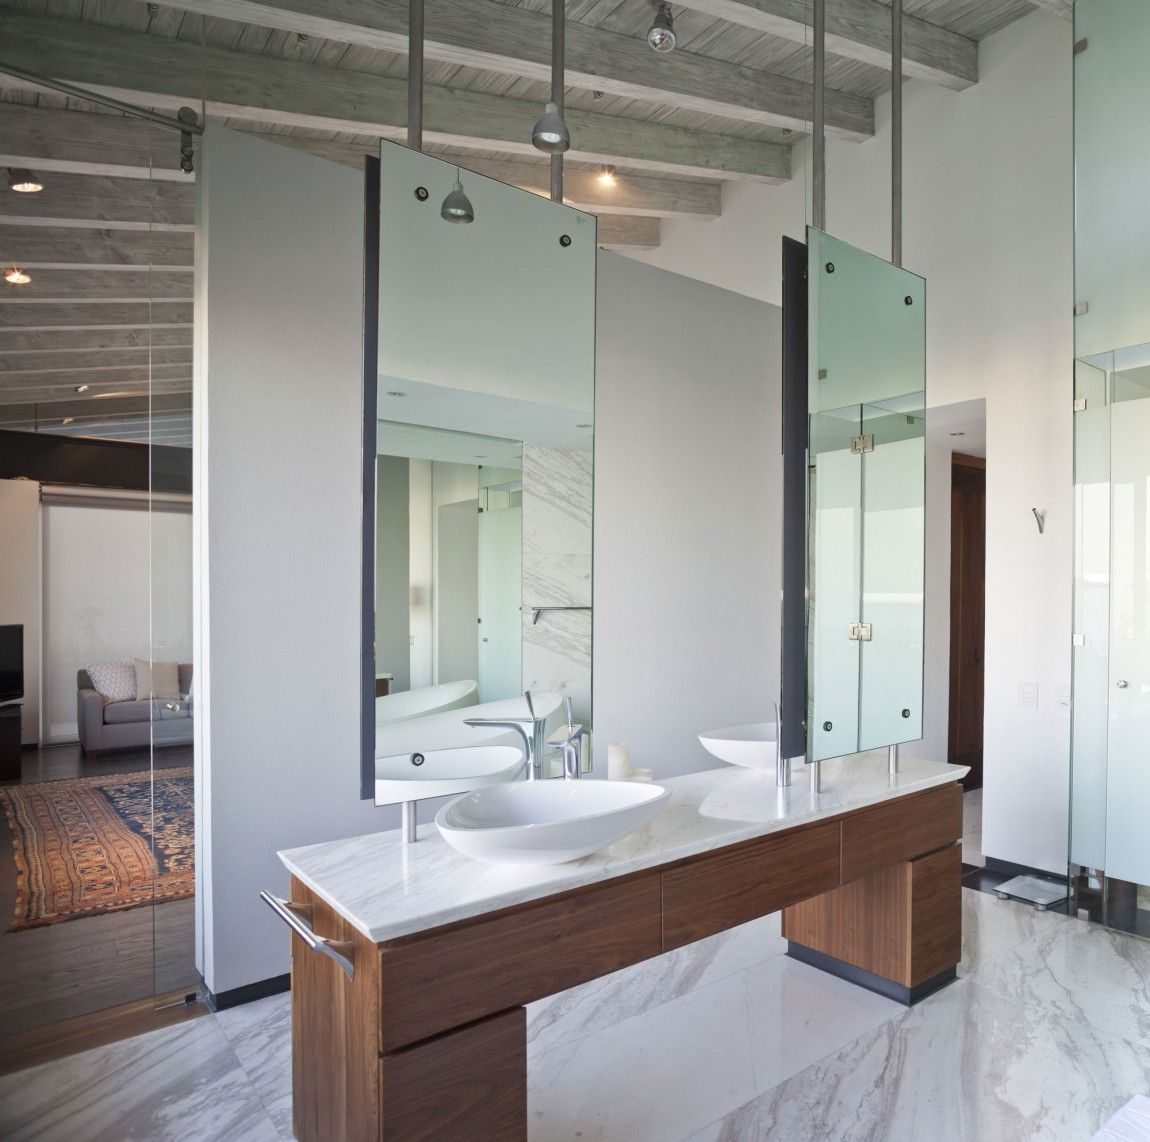 Imposing Luxury Bathroom Ides astonishing bathrooms design and bathroom design choosing the right tiles first Elegant Bathroom Imposing Modern Residence Inspiring Openness Casa Ro Hondo